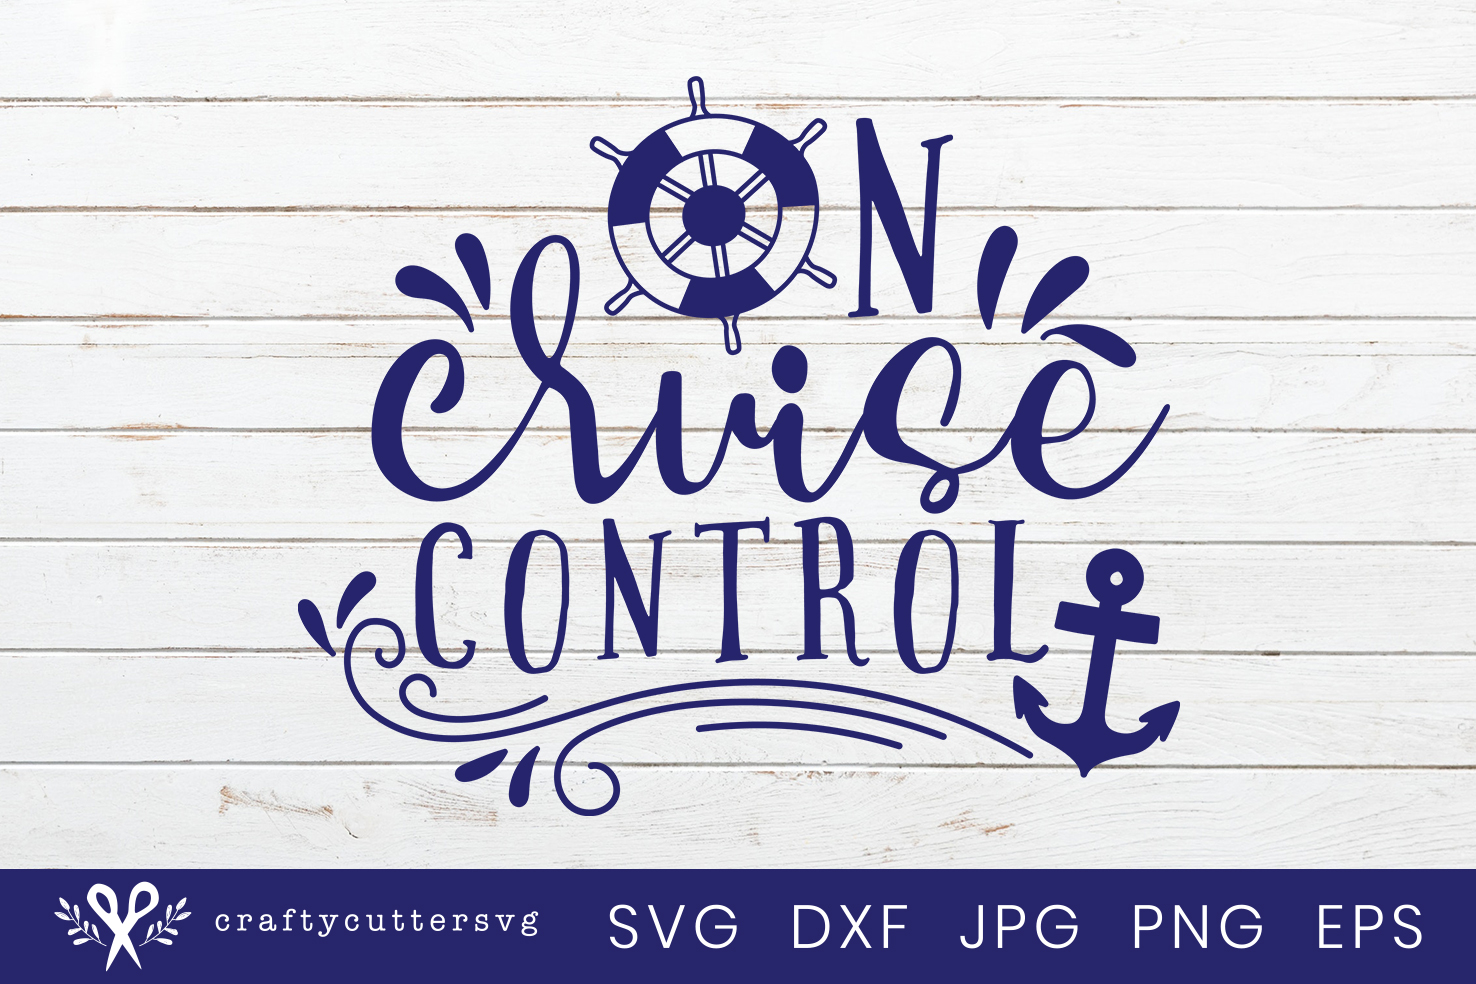 On cruise control Svg Cut File Steering Wheel Anchor Clipart example image 2